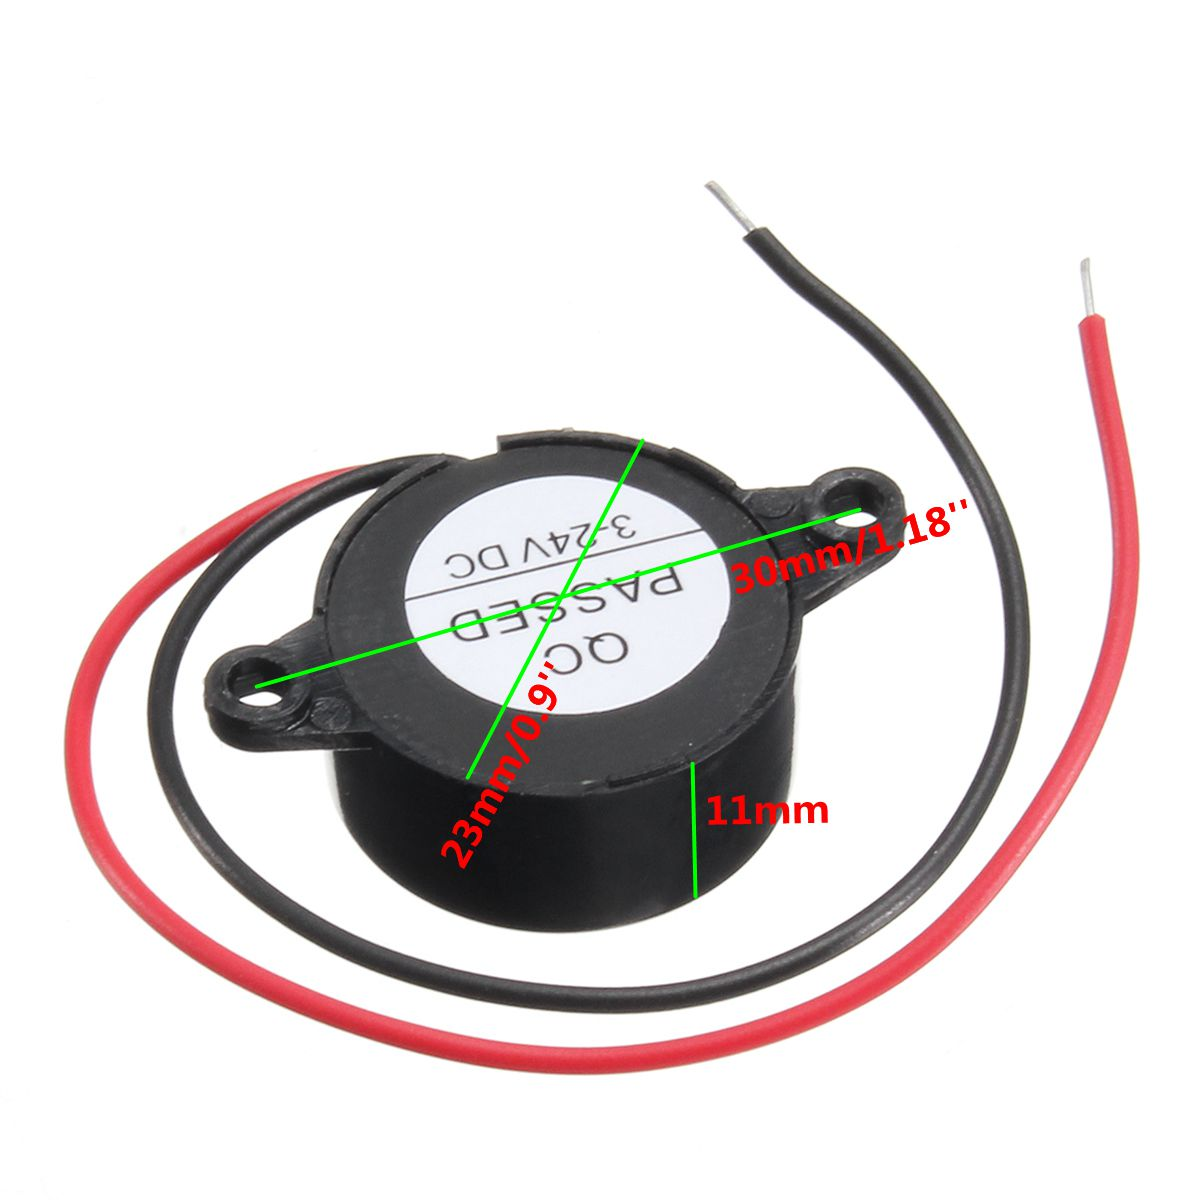 Image 5 - 3 24V Electric Buzzer Alarm Loud Speaker Warning Car Security Horn Automobile Siren Police Sirens Air Horn Electric Vehicle-in Multi-tone & Claxon Horns from Automobiles & Motorcycles